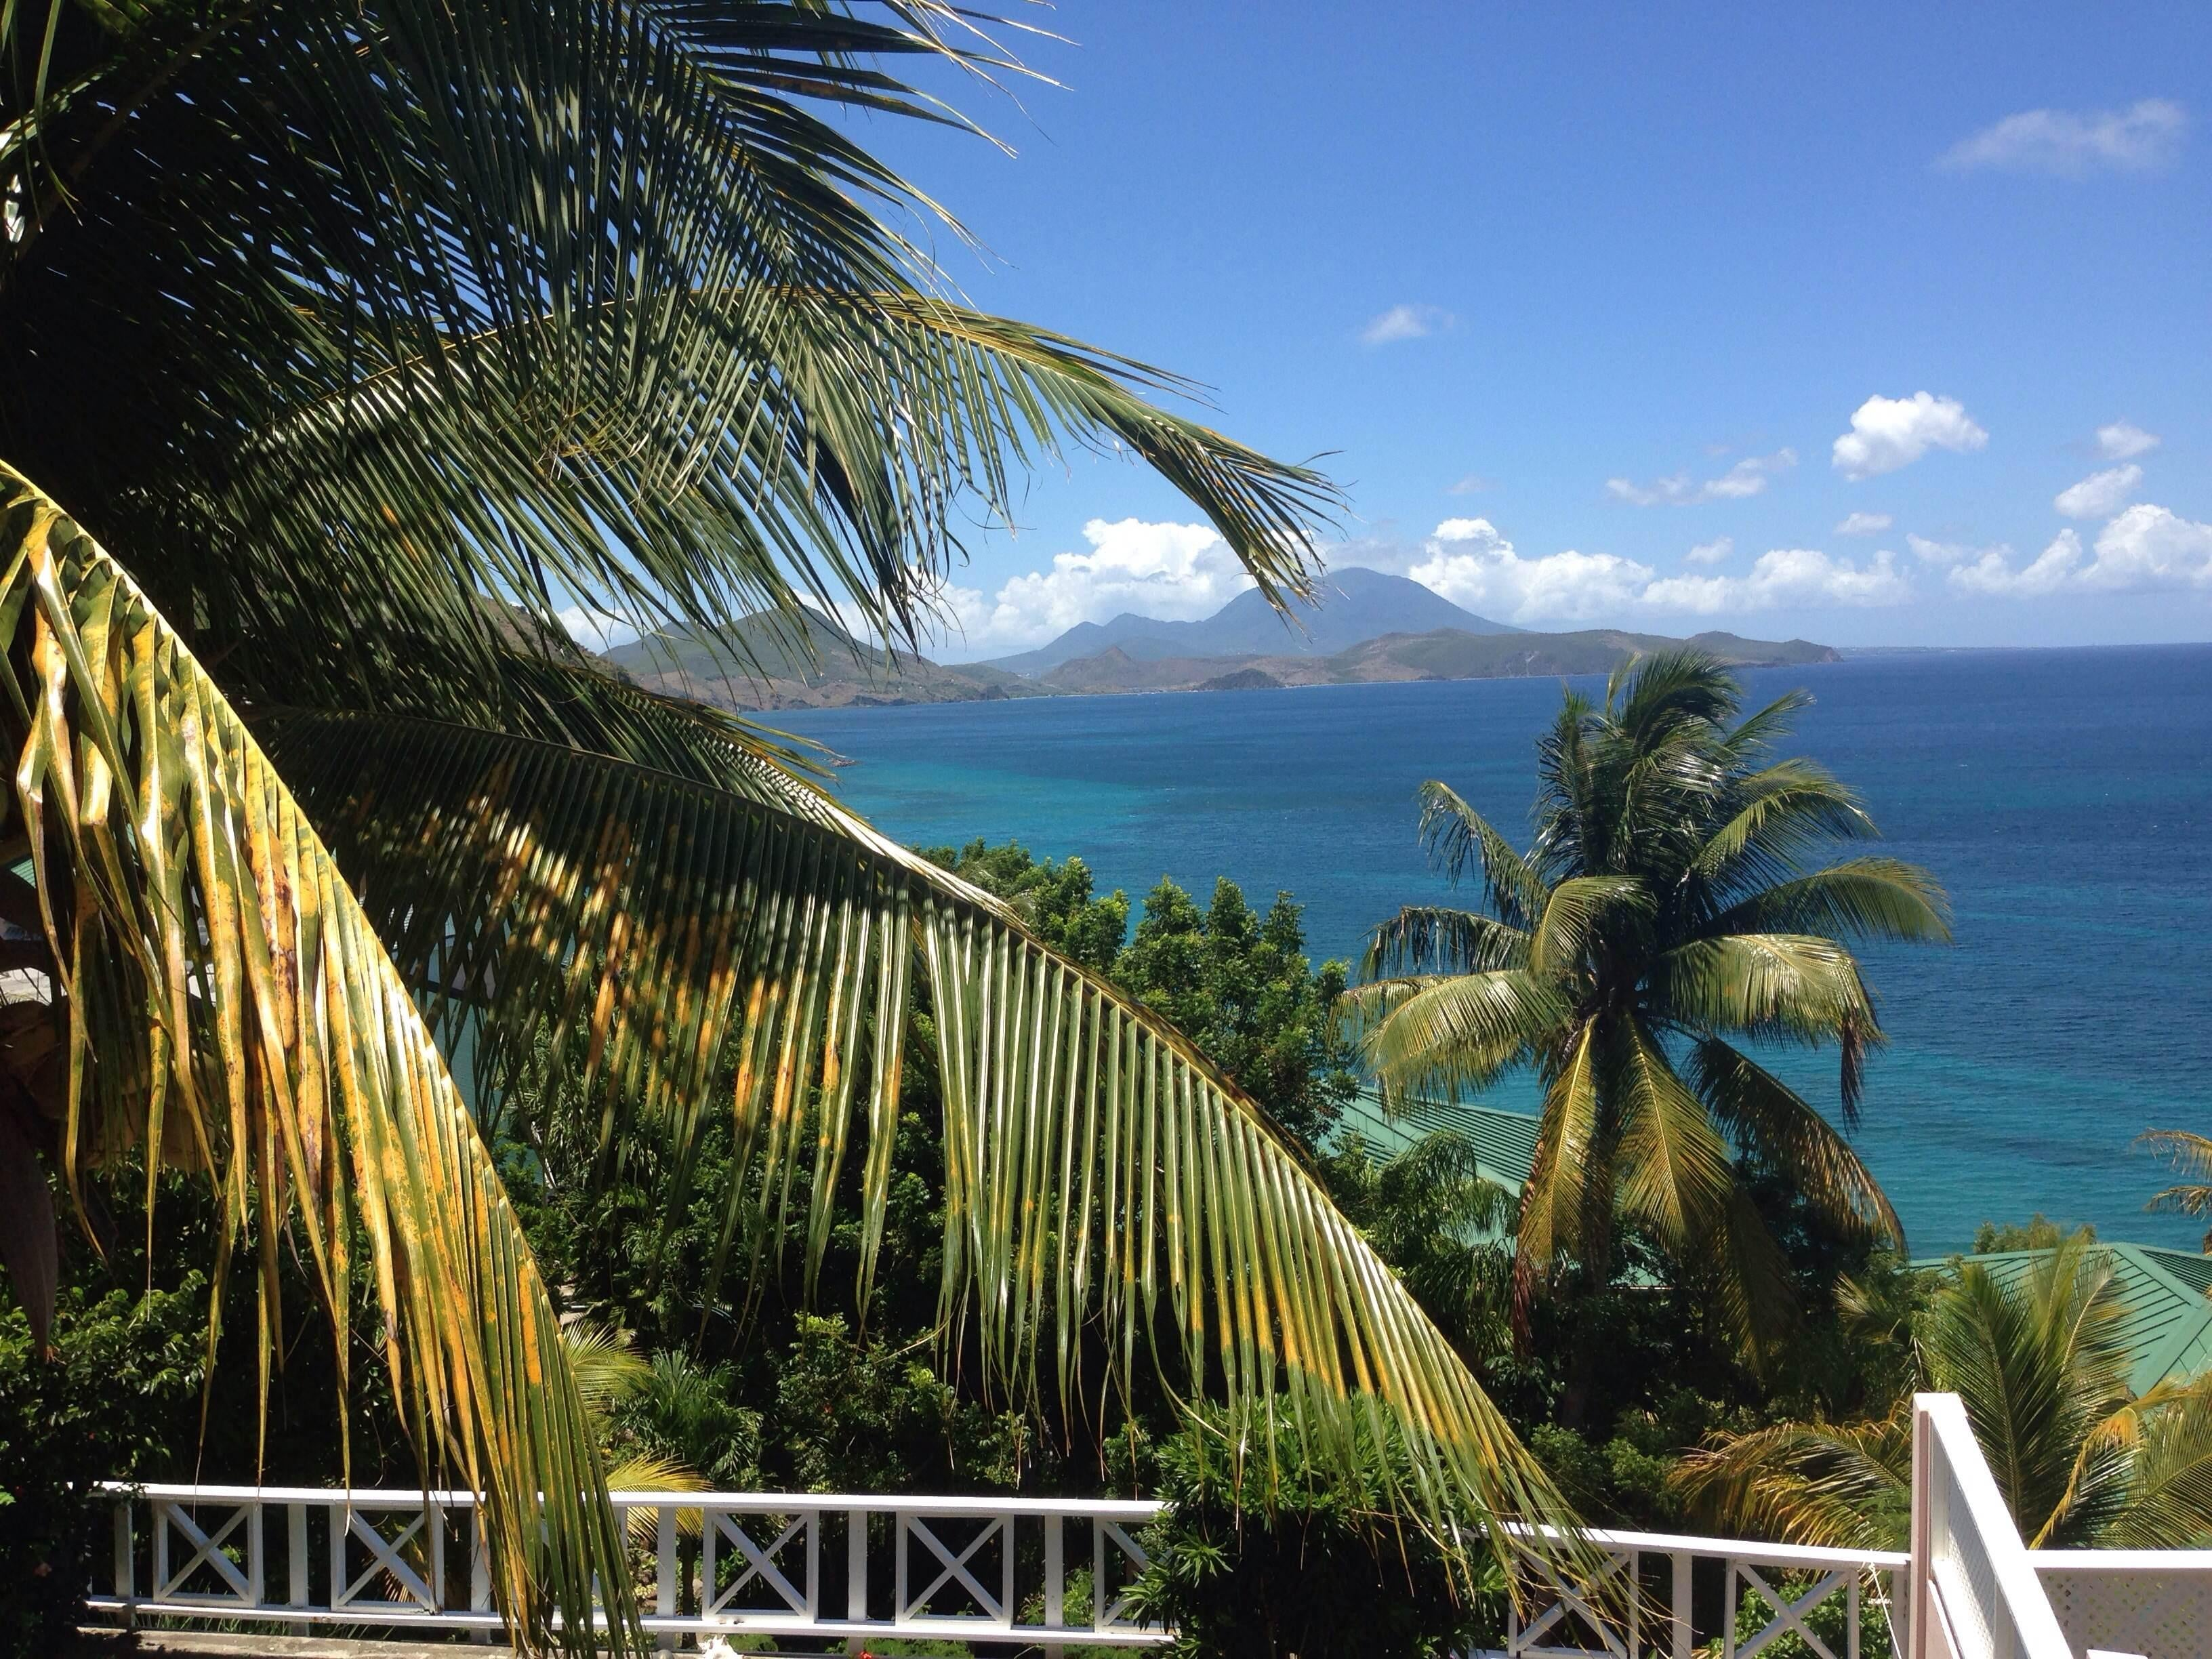 Vacation in Saint Kitts and Nevis